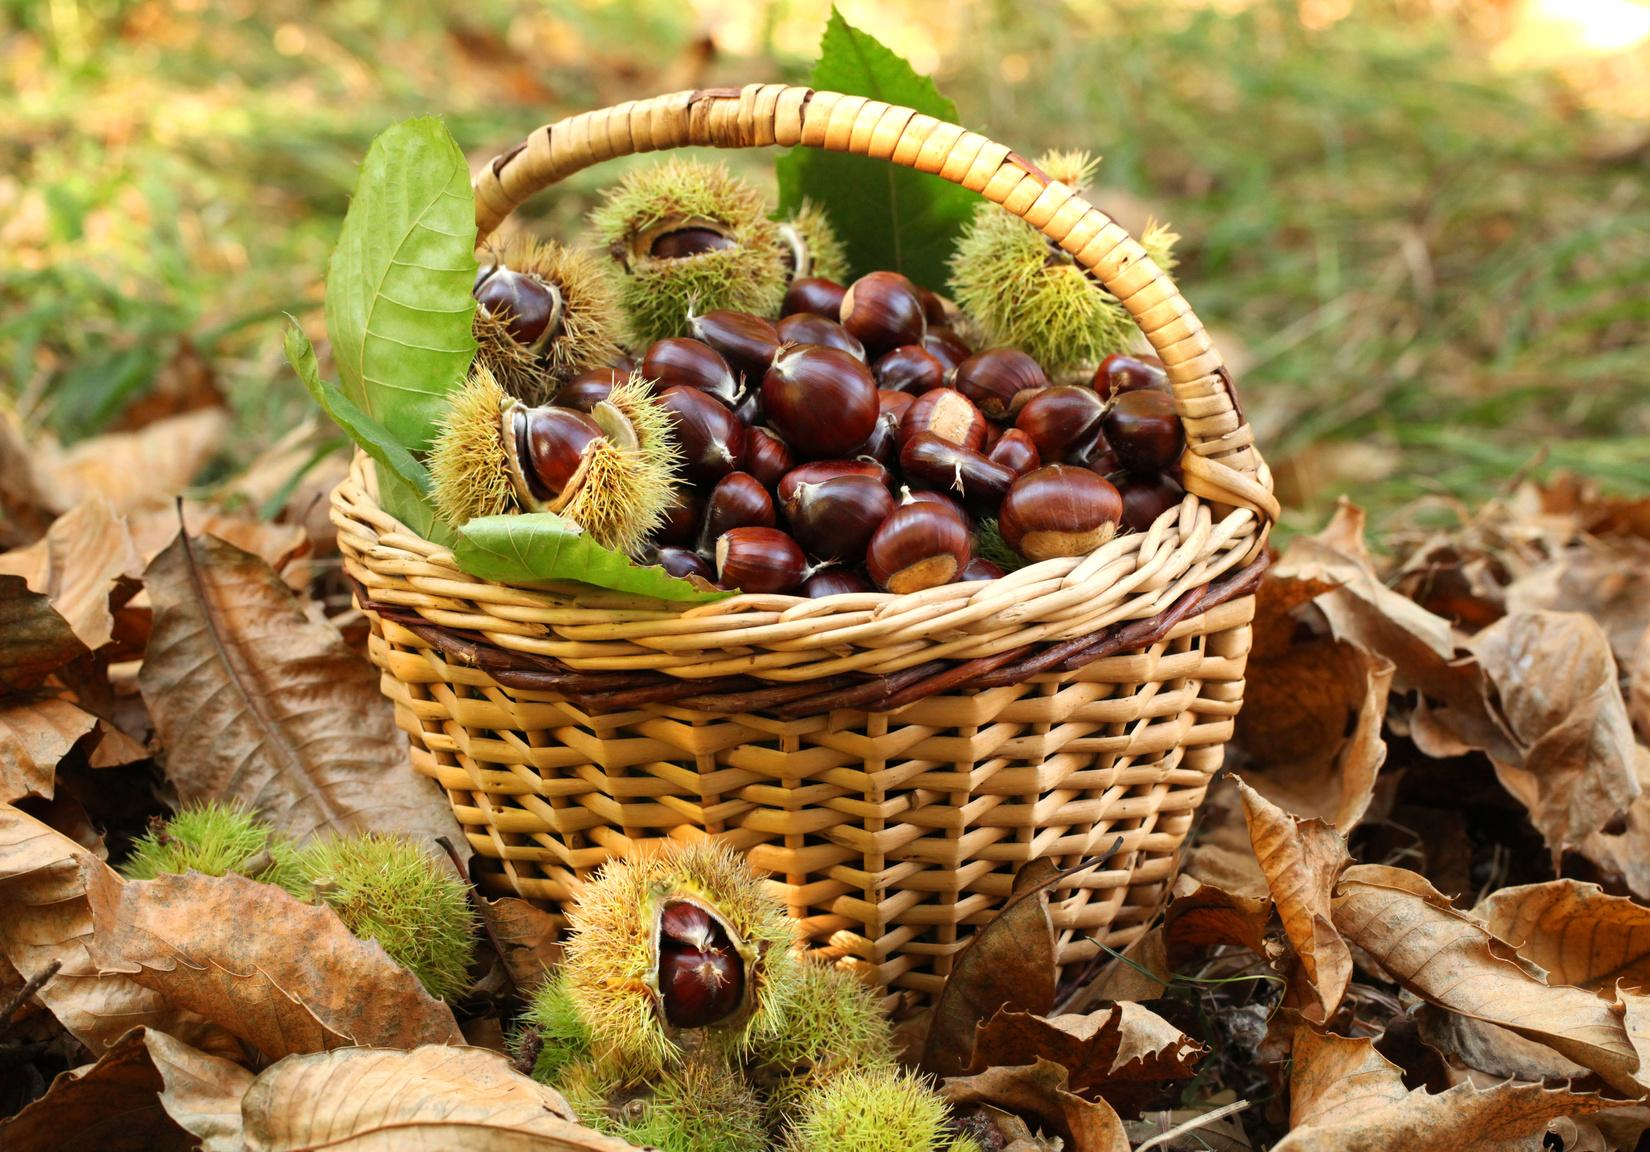 Novembre e le Castagne - Gluten Free Travel and Living